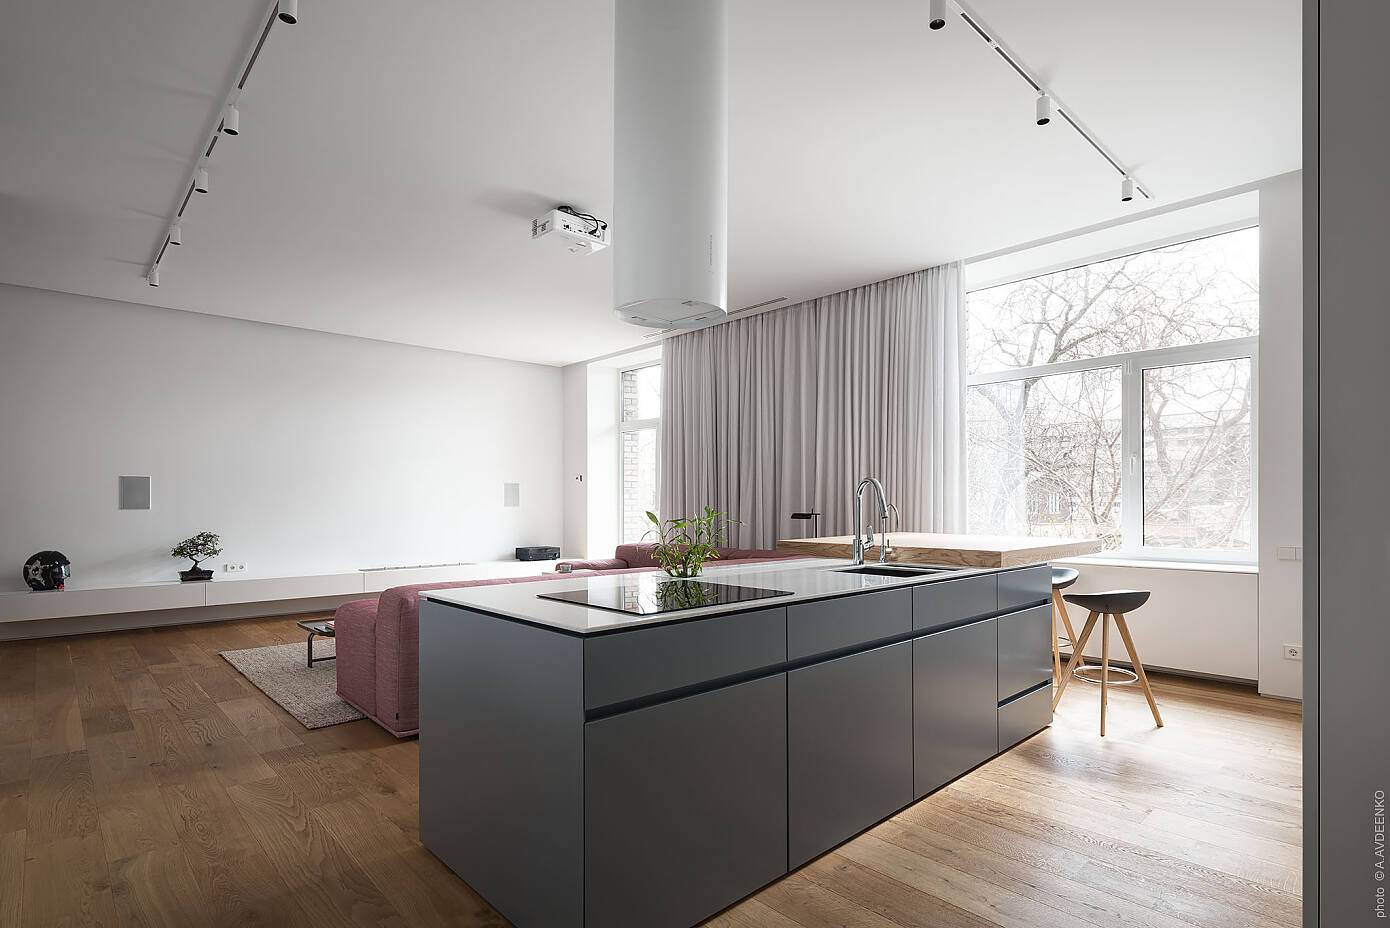 Apartment in Dnipro by Valentirov & Partners